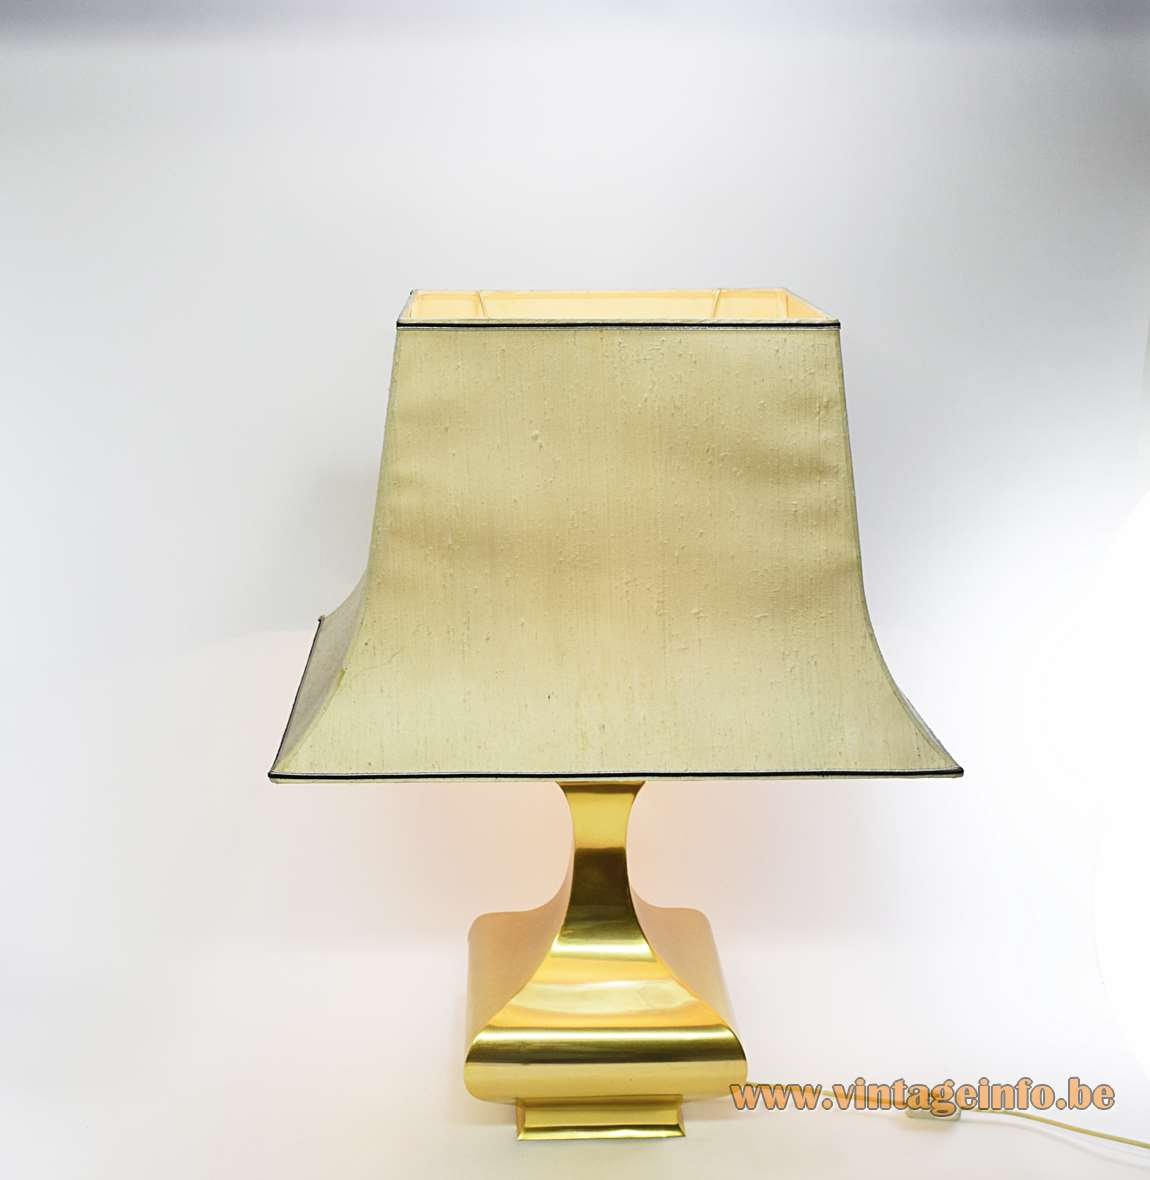 Maria Pergay Balustre Table Lamp completely made of brass pagoda fabric lampshade square base 1970s mcm